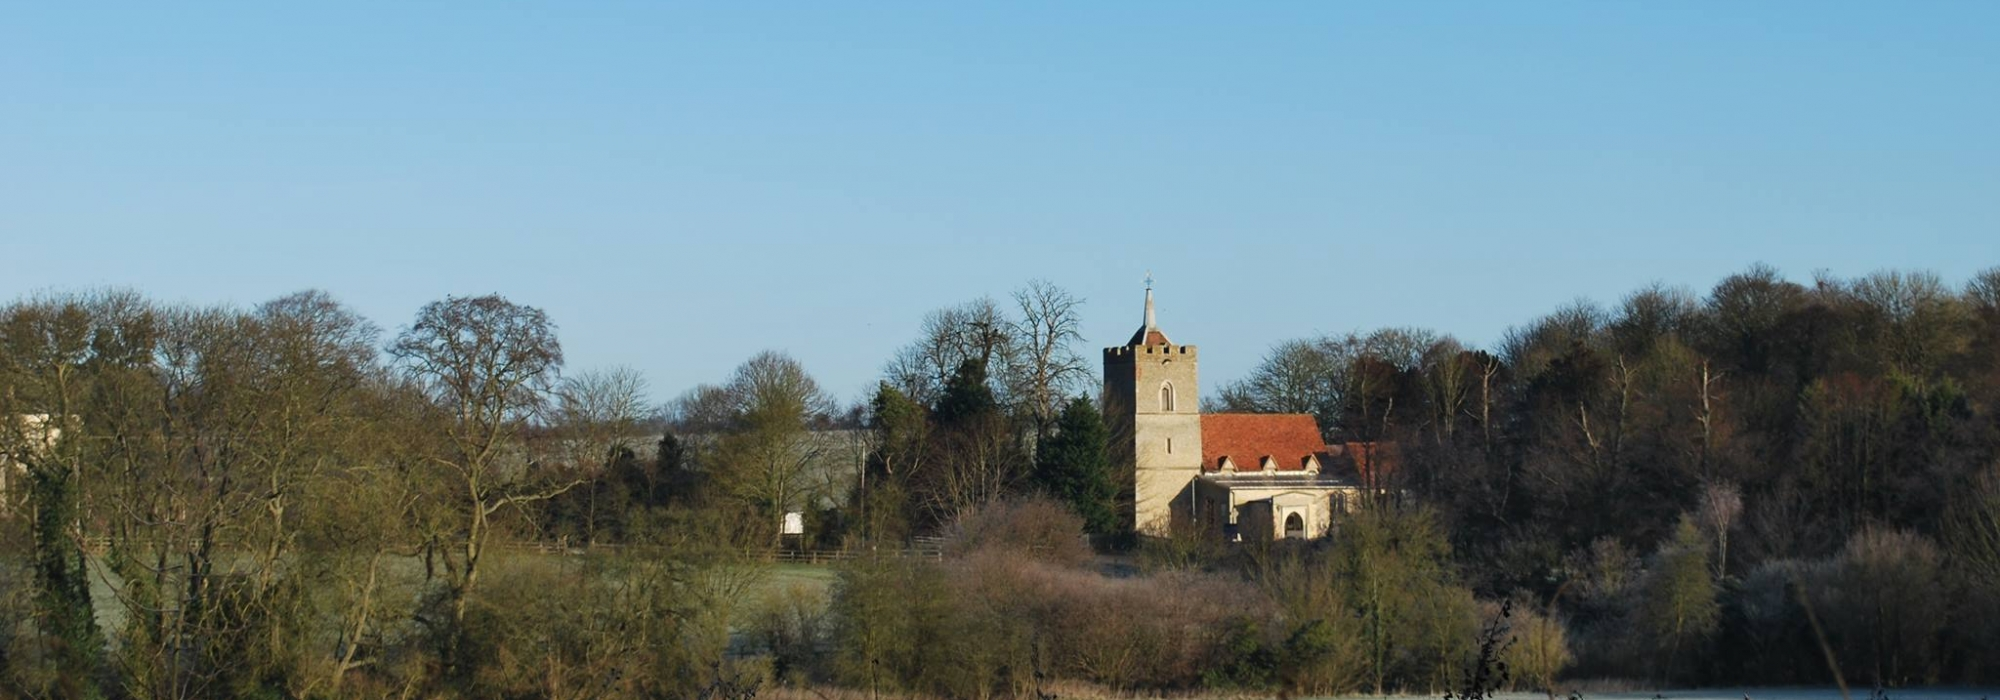 Church on horizon